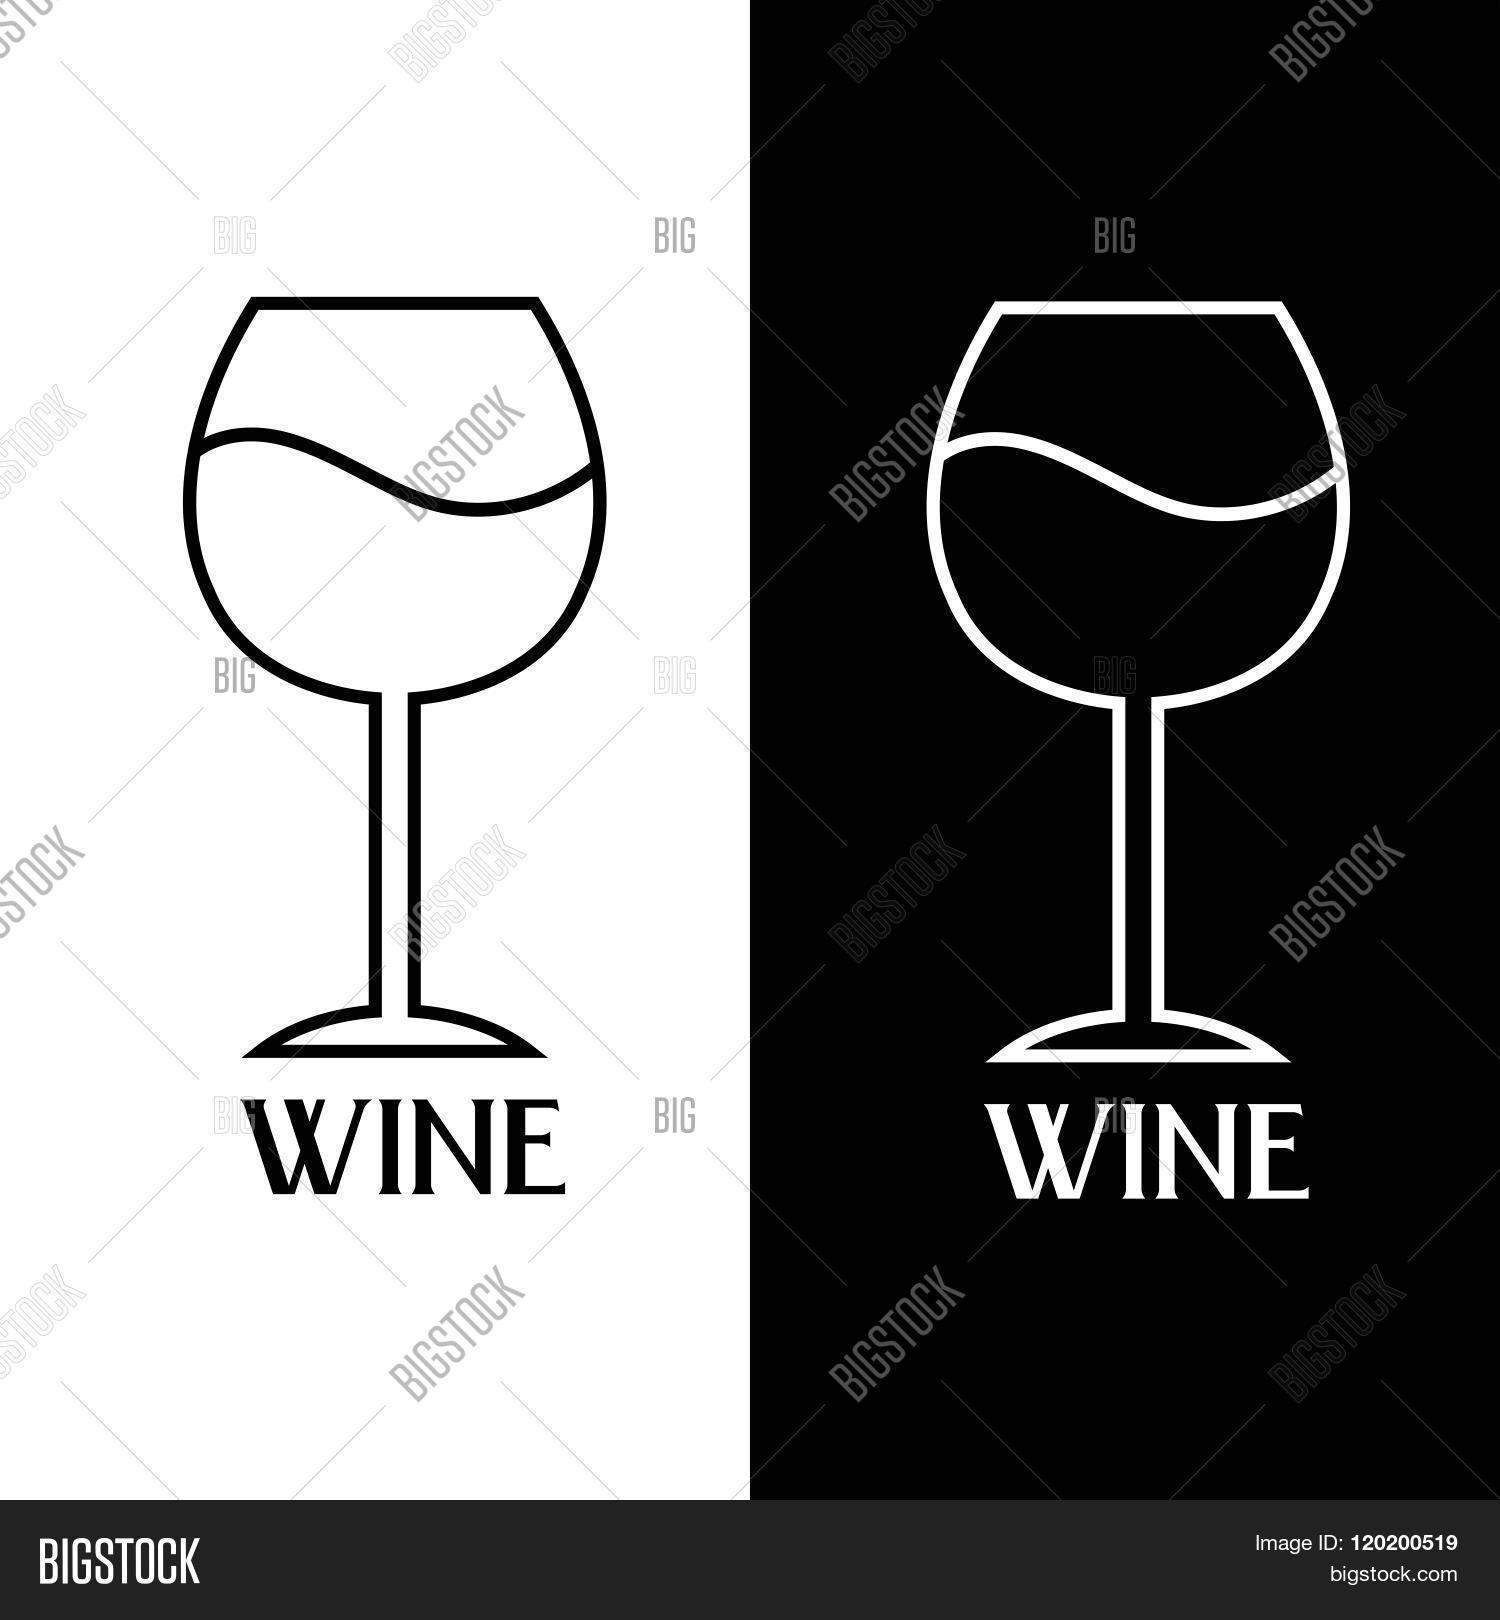 Wine Glass Vector Design Template . Concept Of Graphic Clipart.